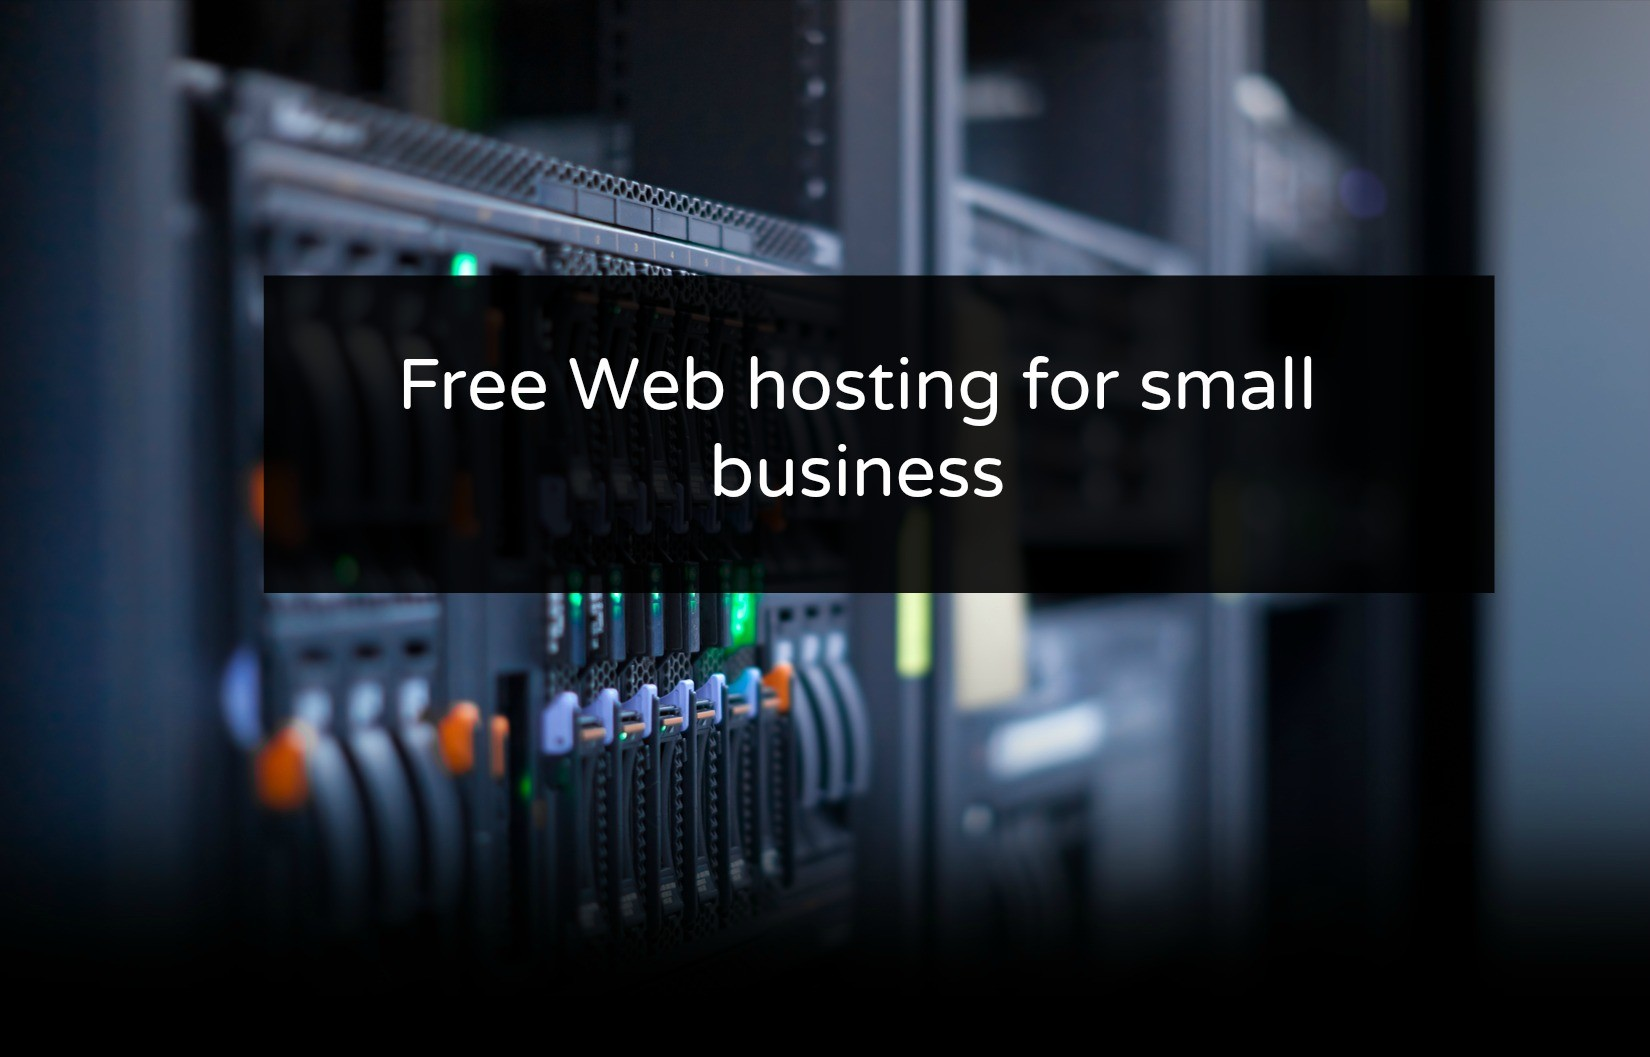 Free Web Hosting For Small Business  Social Talky. Twitter Developer Tools Pest Control Terminix. Inserting A Catheter Male Houston Ad Agencies. Moving Companies Kansas City. Precision Plumbing Billings Mt. Los Angeles Phone Company Skin Damage Repair. Bed And Breakfast Vancouver Canada. Statewide Bail Bonds Utah Ruby On Rails Hosts. Southern Spine Specialists New Air Miles Card